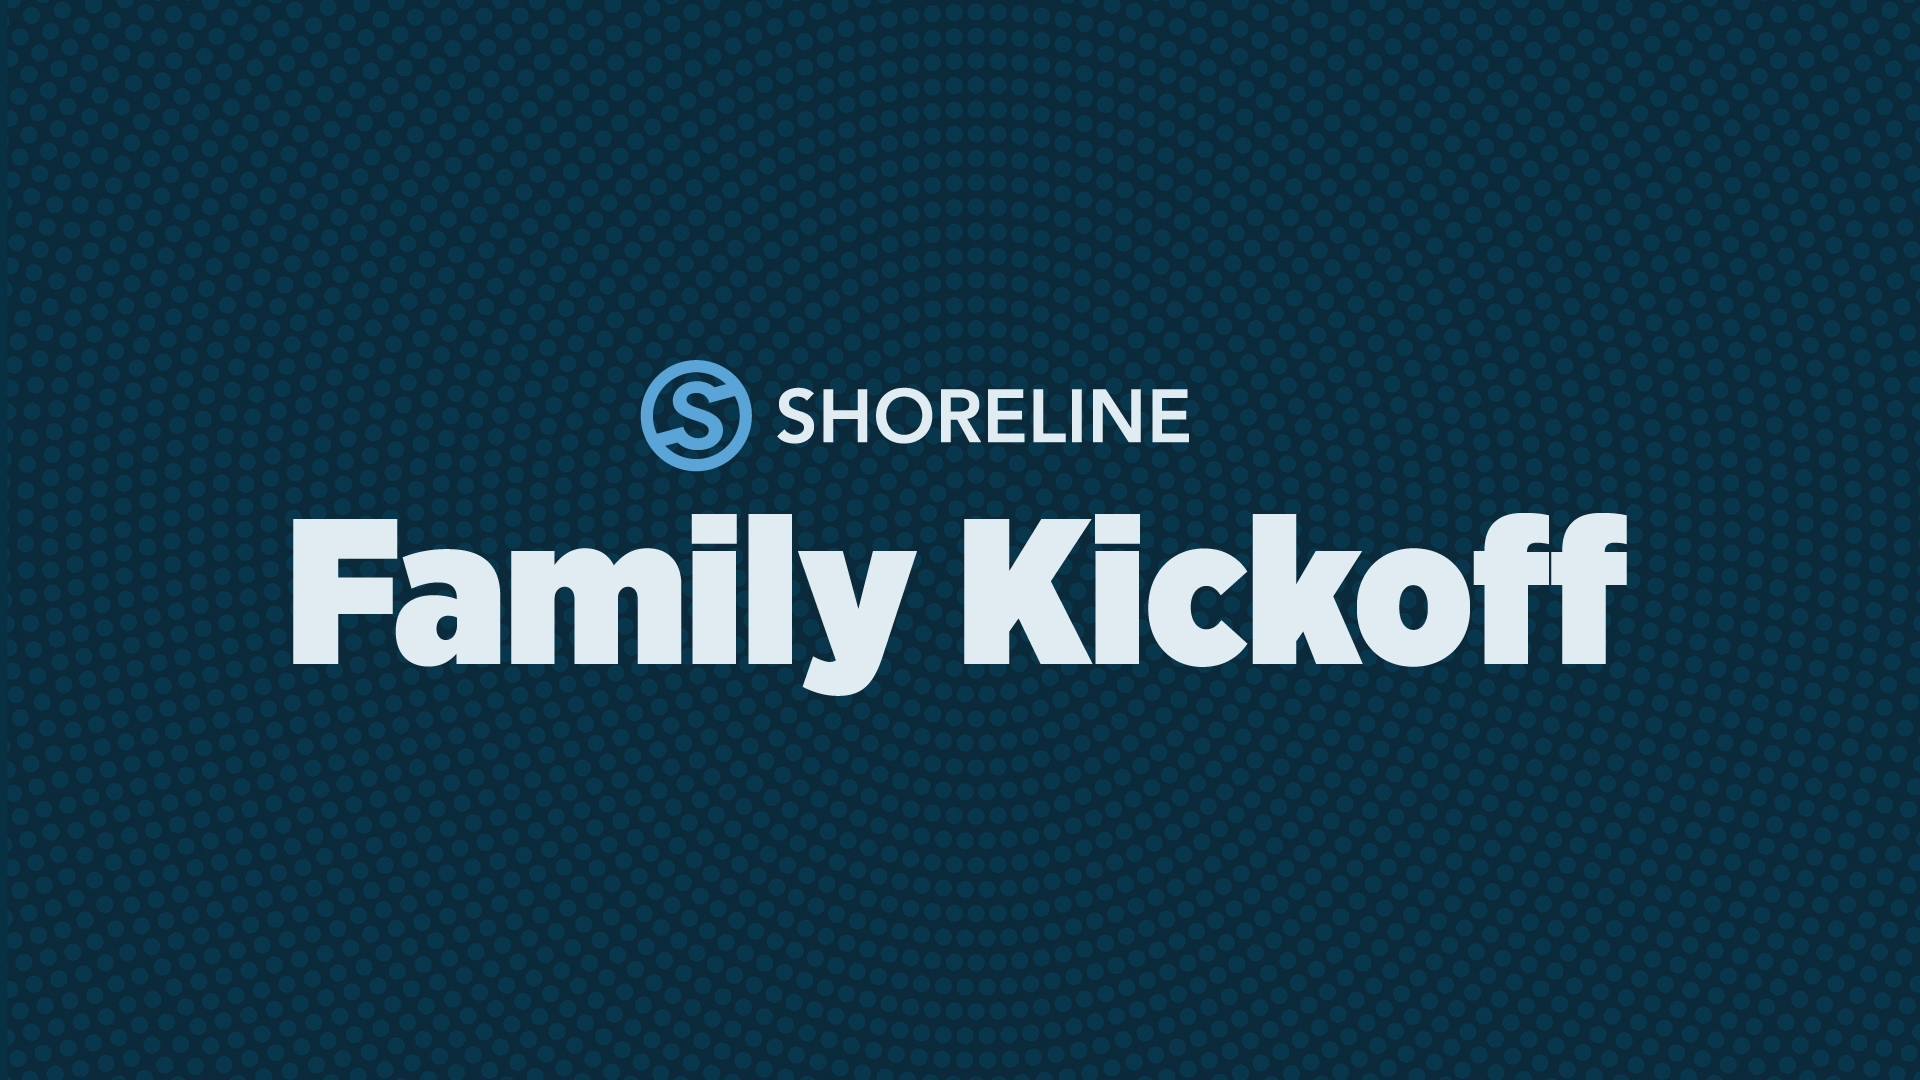 2020 – 2021 Shoreline Family Kickoff